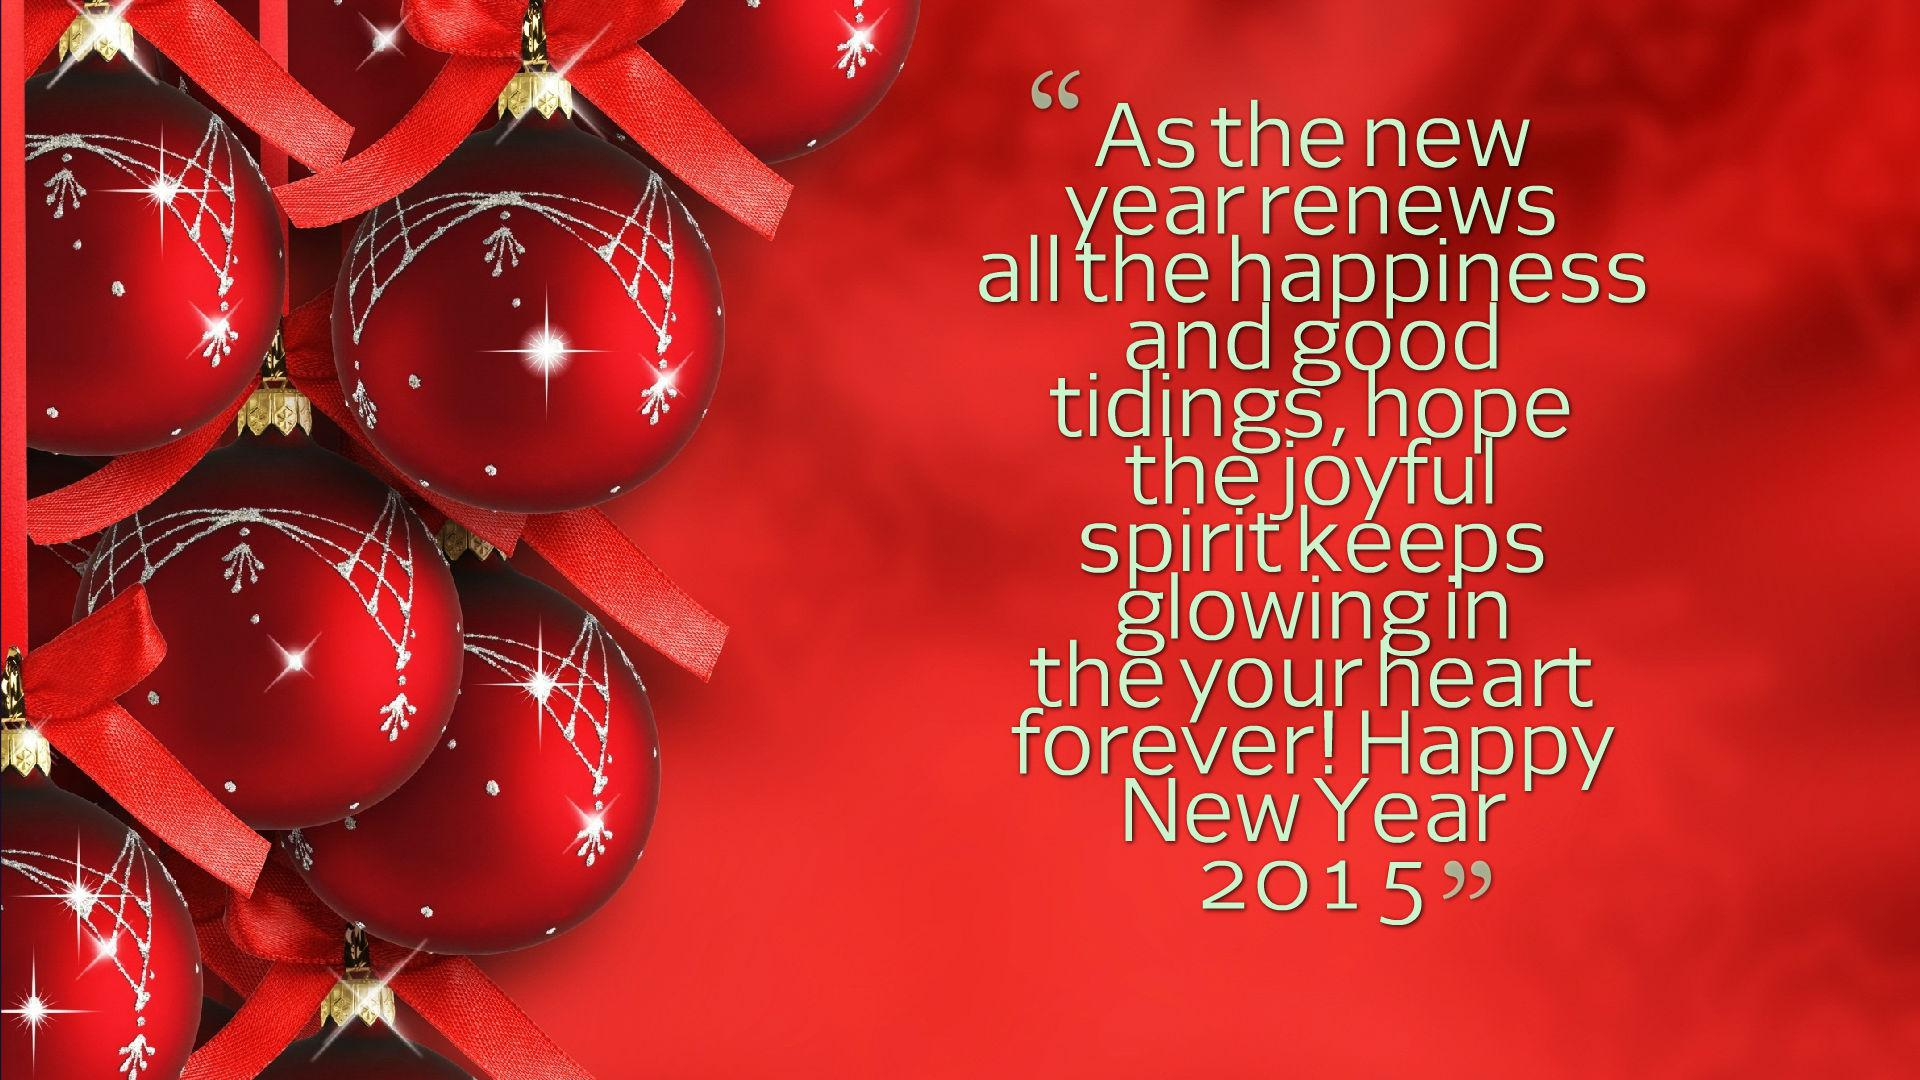 Happy new year greeting cards happy new year 2015 quotes wallpaper kristyandbryce Gallery